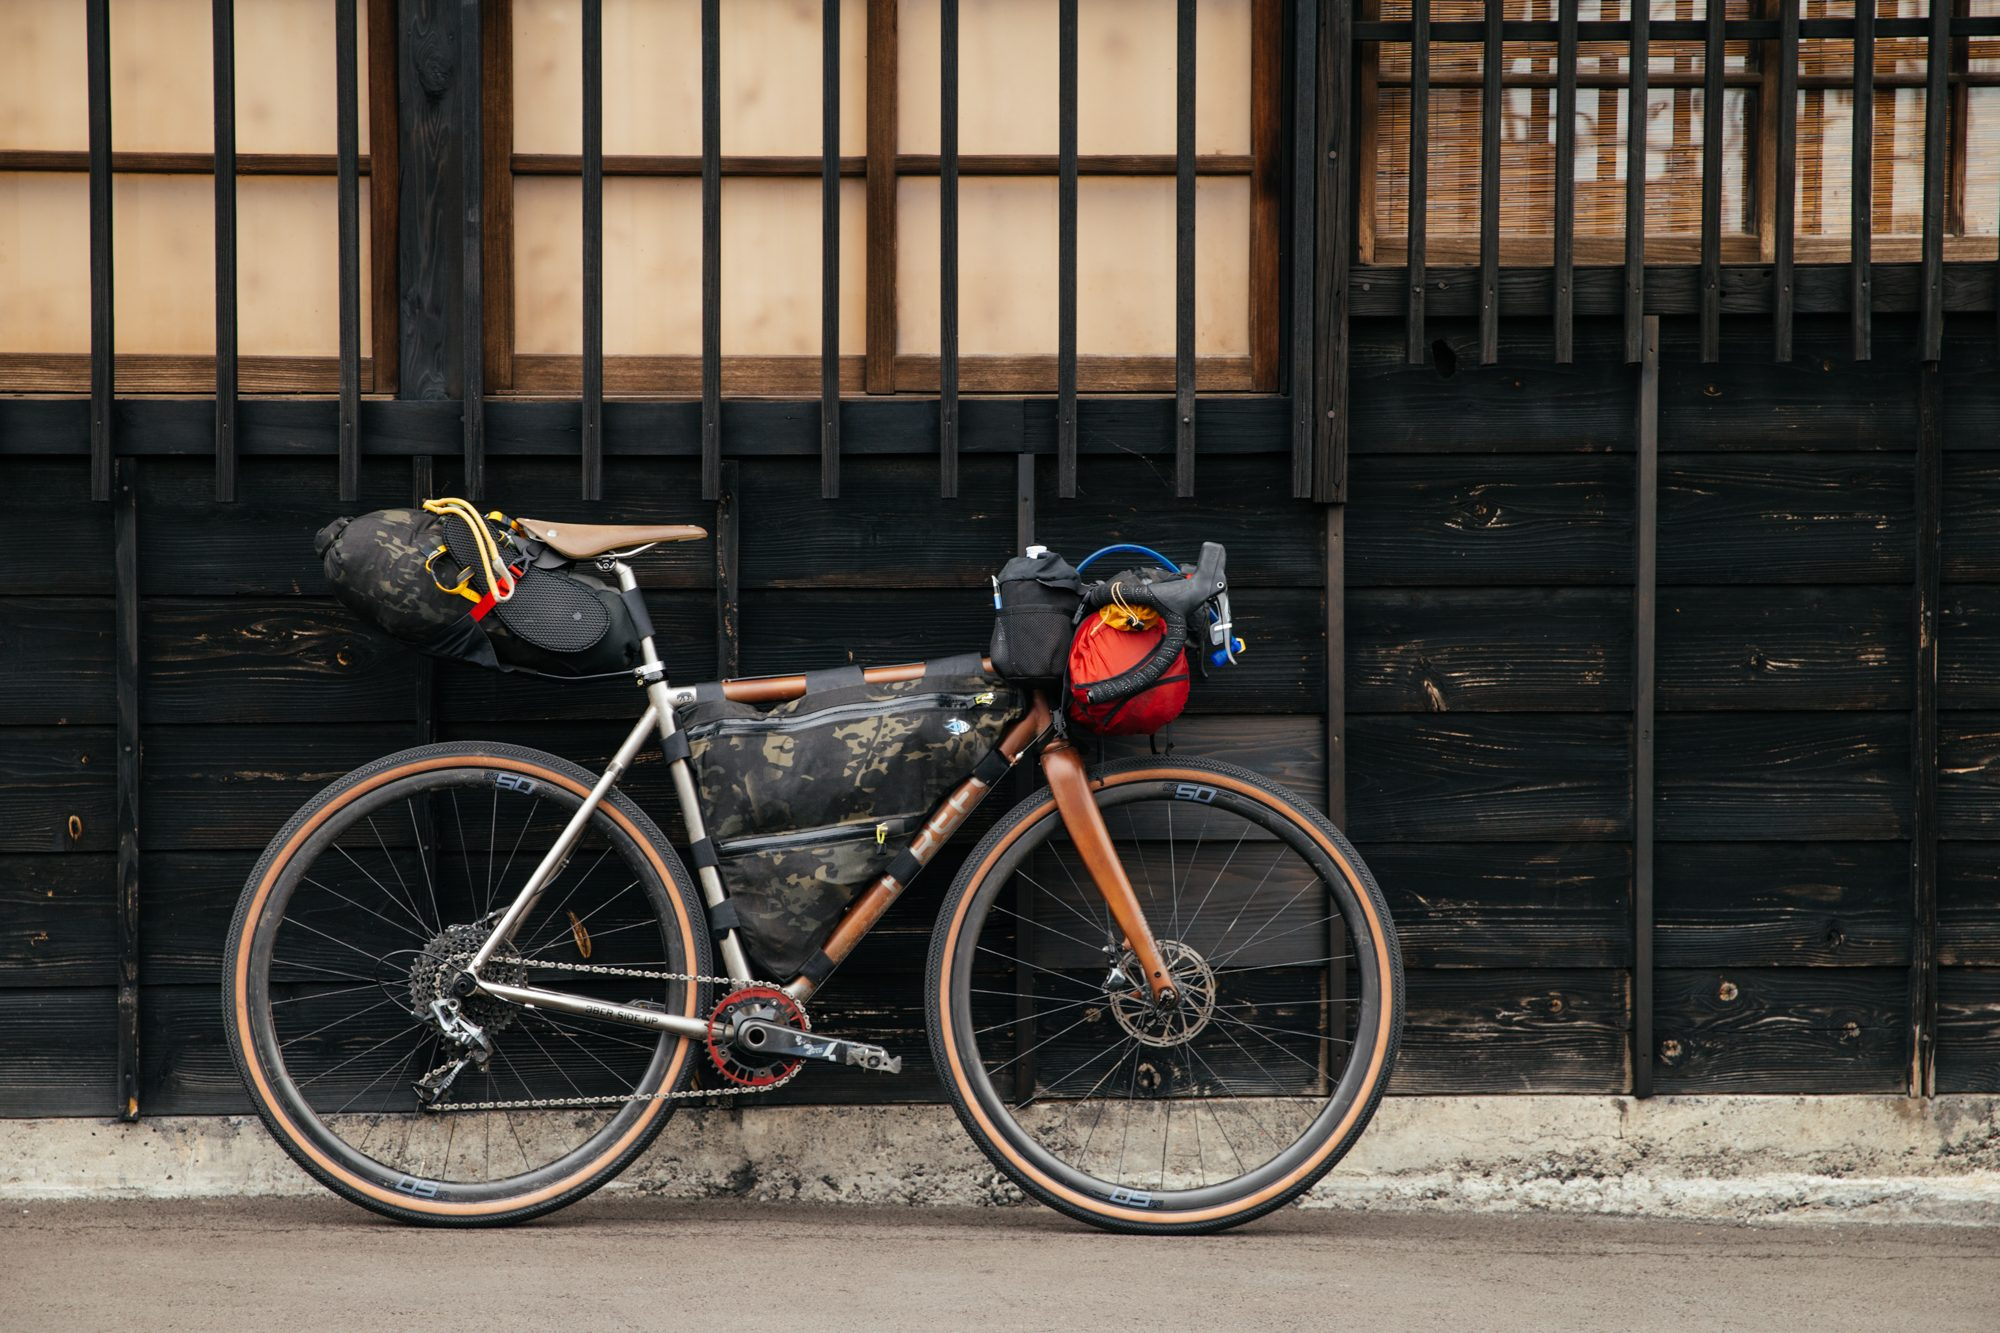 My Firefly loaded up for five days of self-supported touring, with weather ranging from 40º and rainy to 85º and humid.